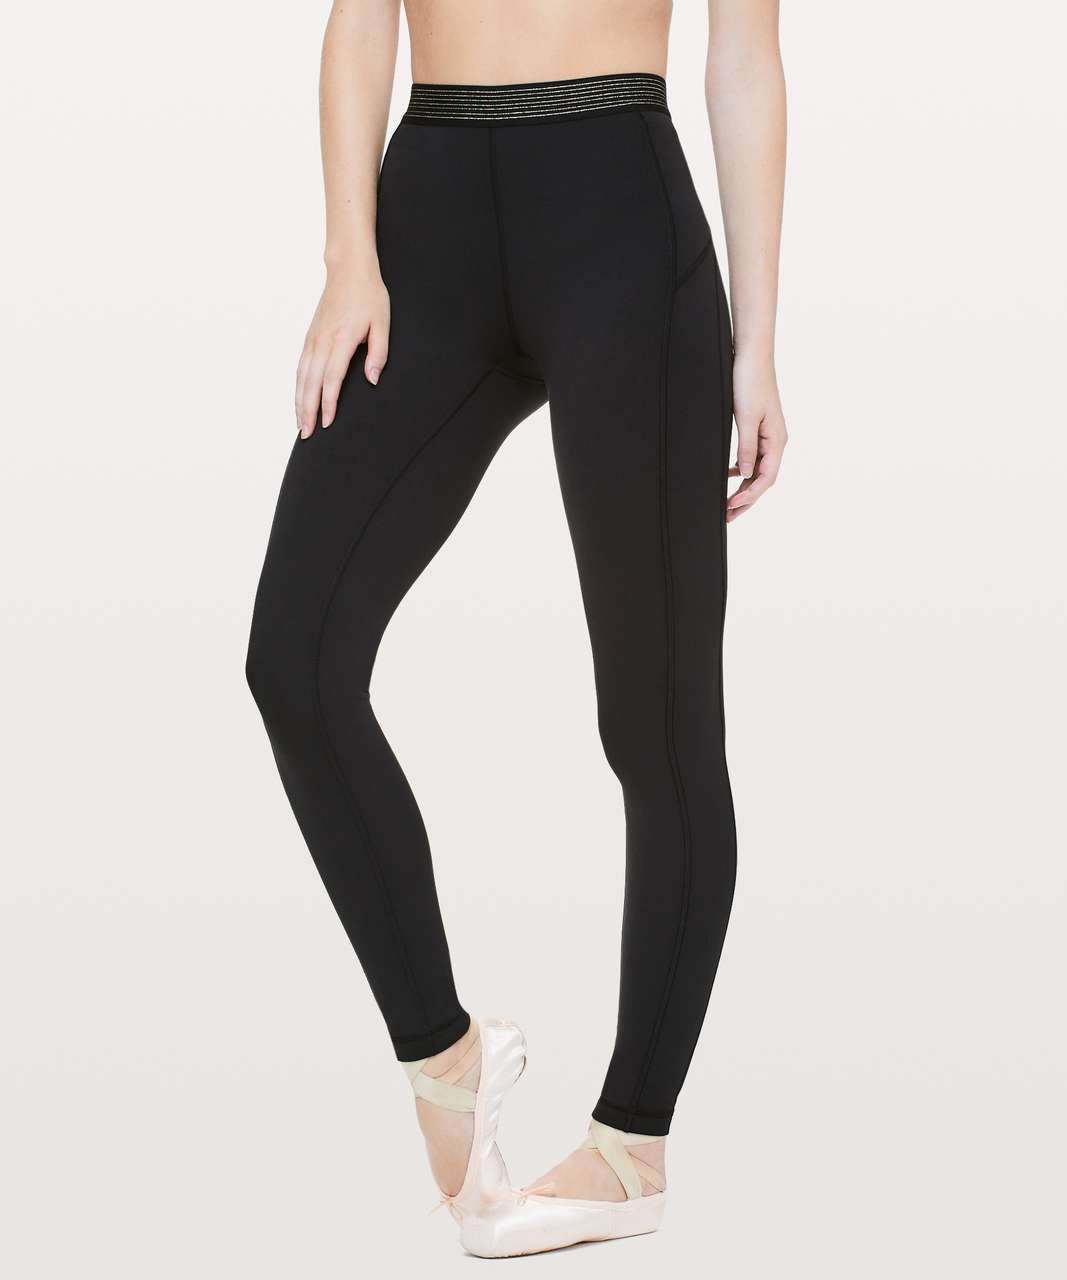 949f49fdd Lululemon Principal Dancer Golden Lining Tight  28